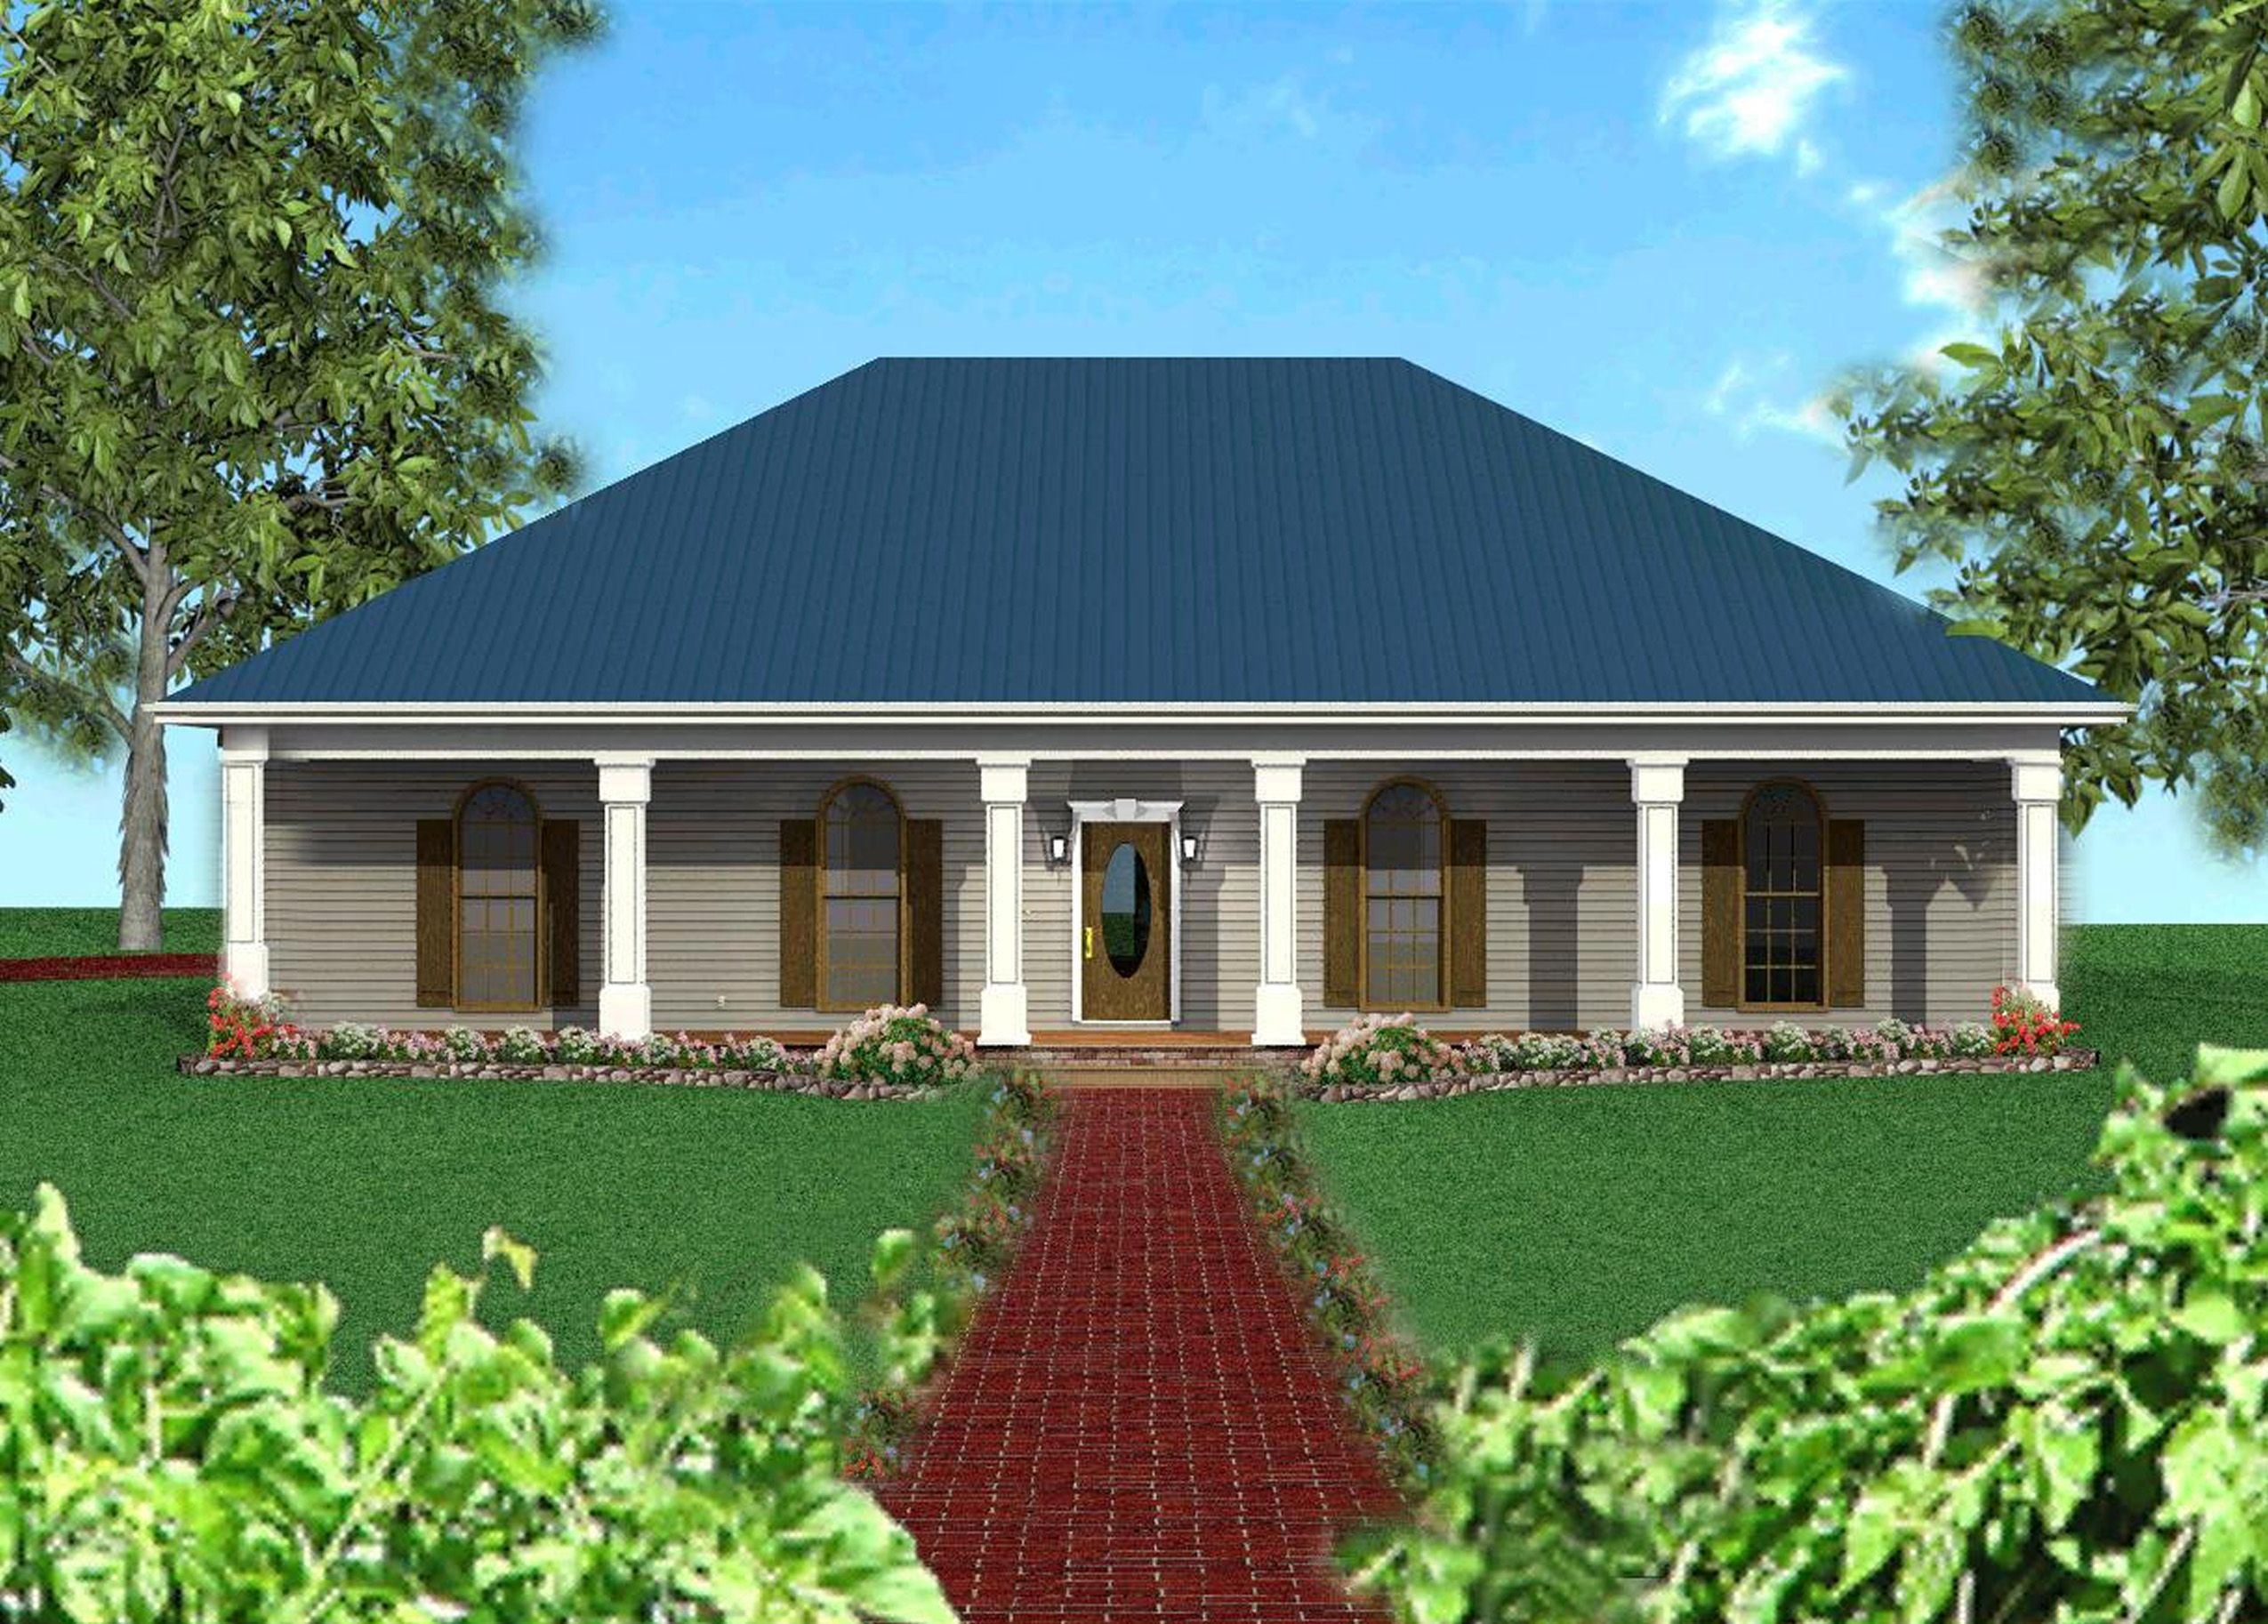 Plan 2521dh Classic Southern With A Hip Roof In 2021 Country Style House Plans Hip Roof Design Southern House Plans